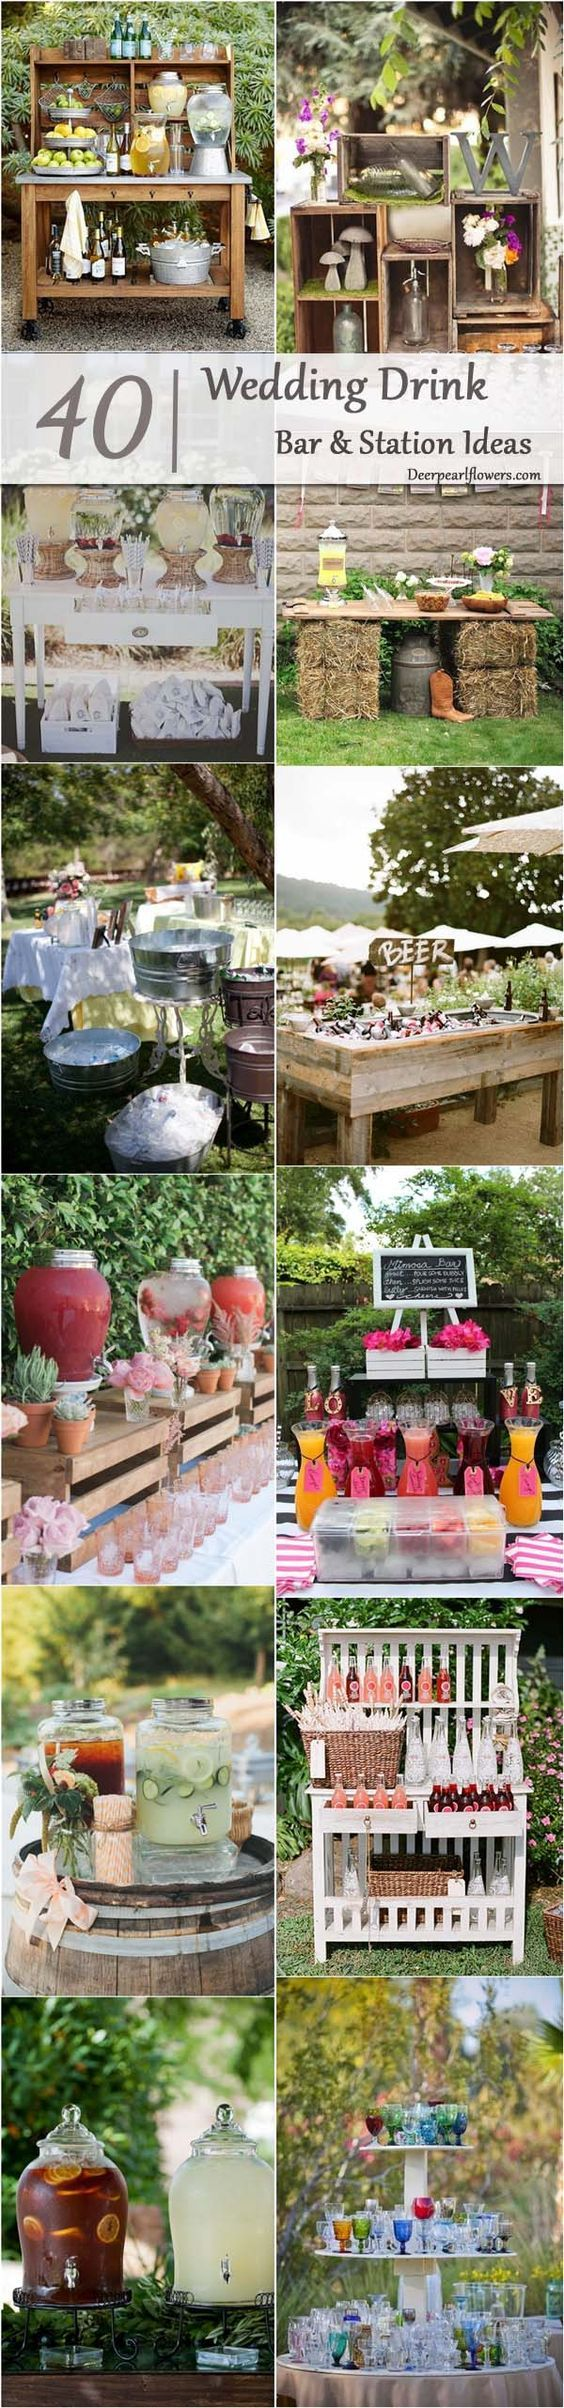 Whether you are hosting a bridal shower, a garden wedding or a day-after brunch, drink stations are a lovely way to really get creative and interactive with your decor.  How can you organize them?  We've rounded up some of our favorite wedding drink station ideas to inspire you.